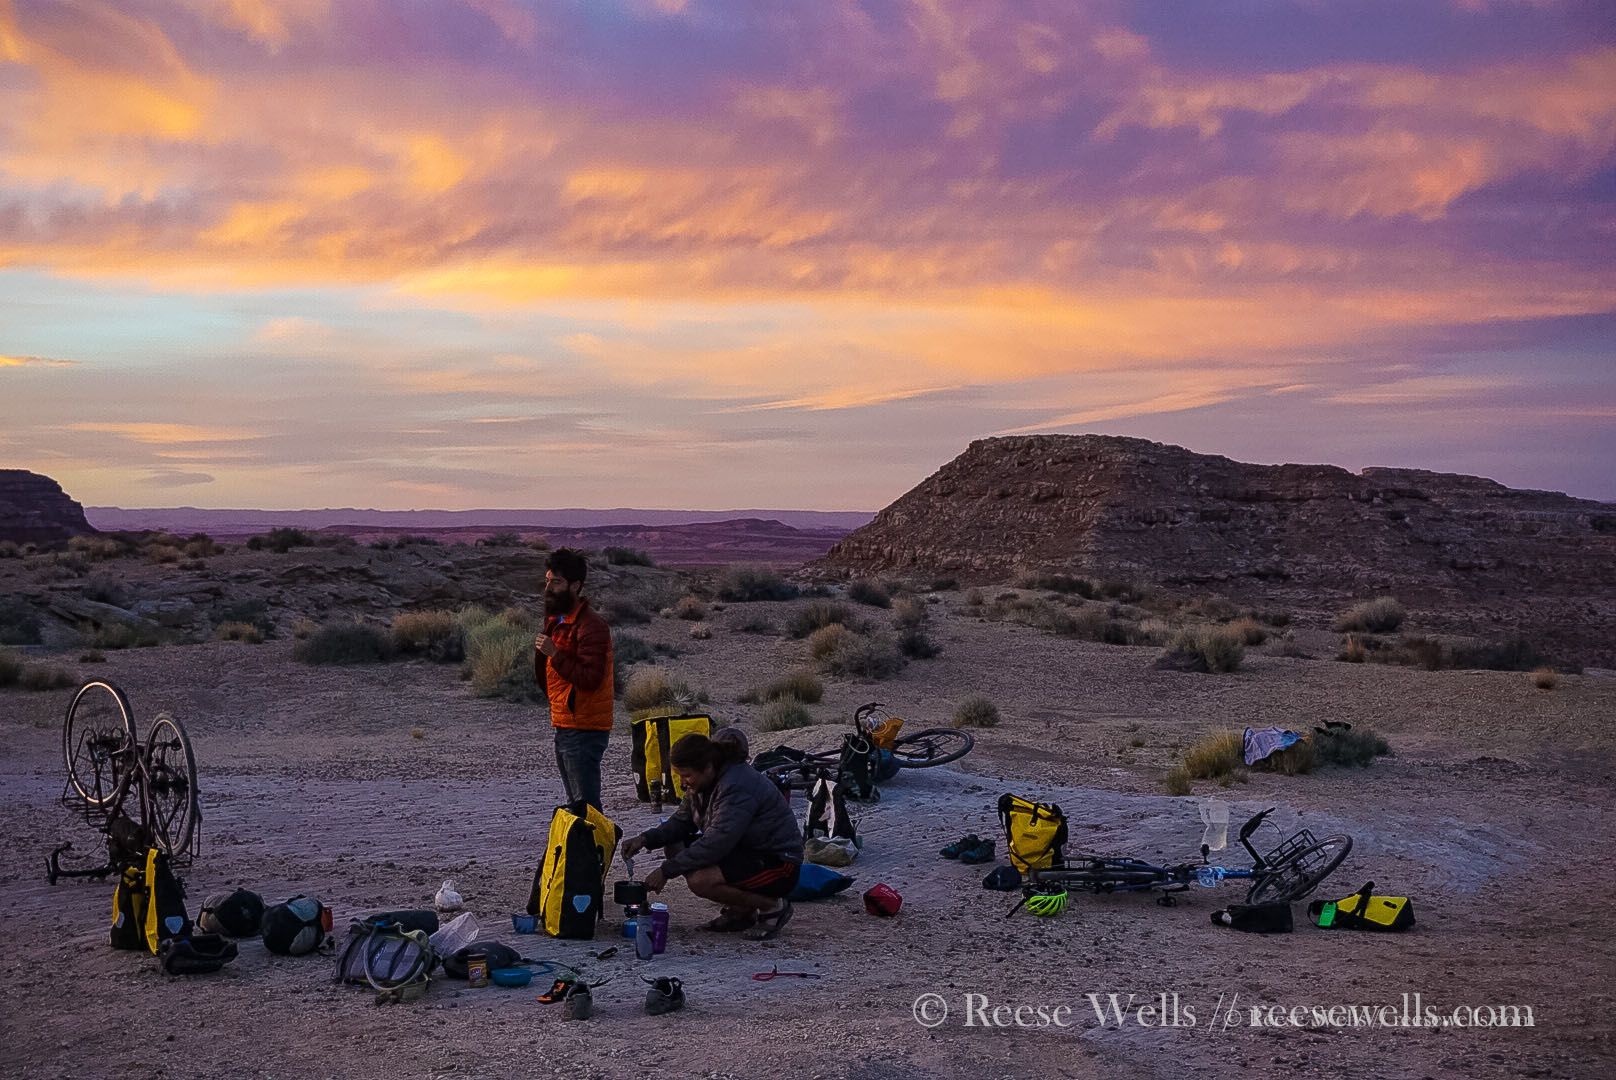 A beautiful sunset over an isolated campsite near Capitol Reef National Park, Utah.